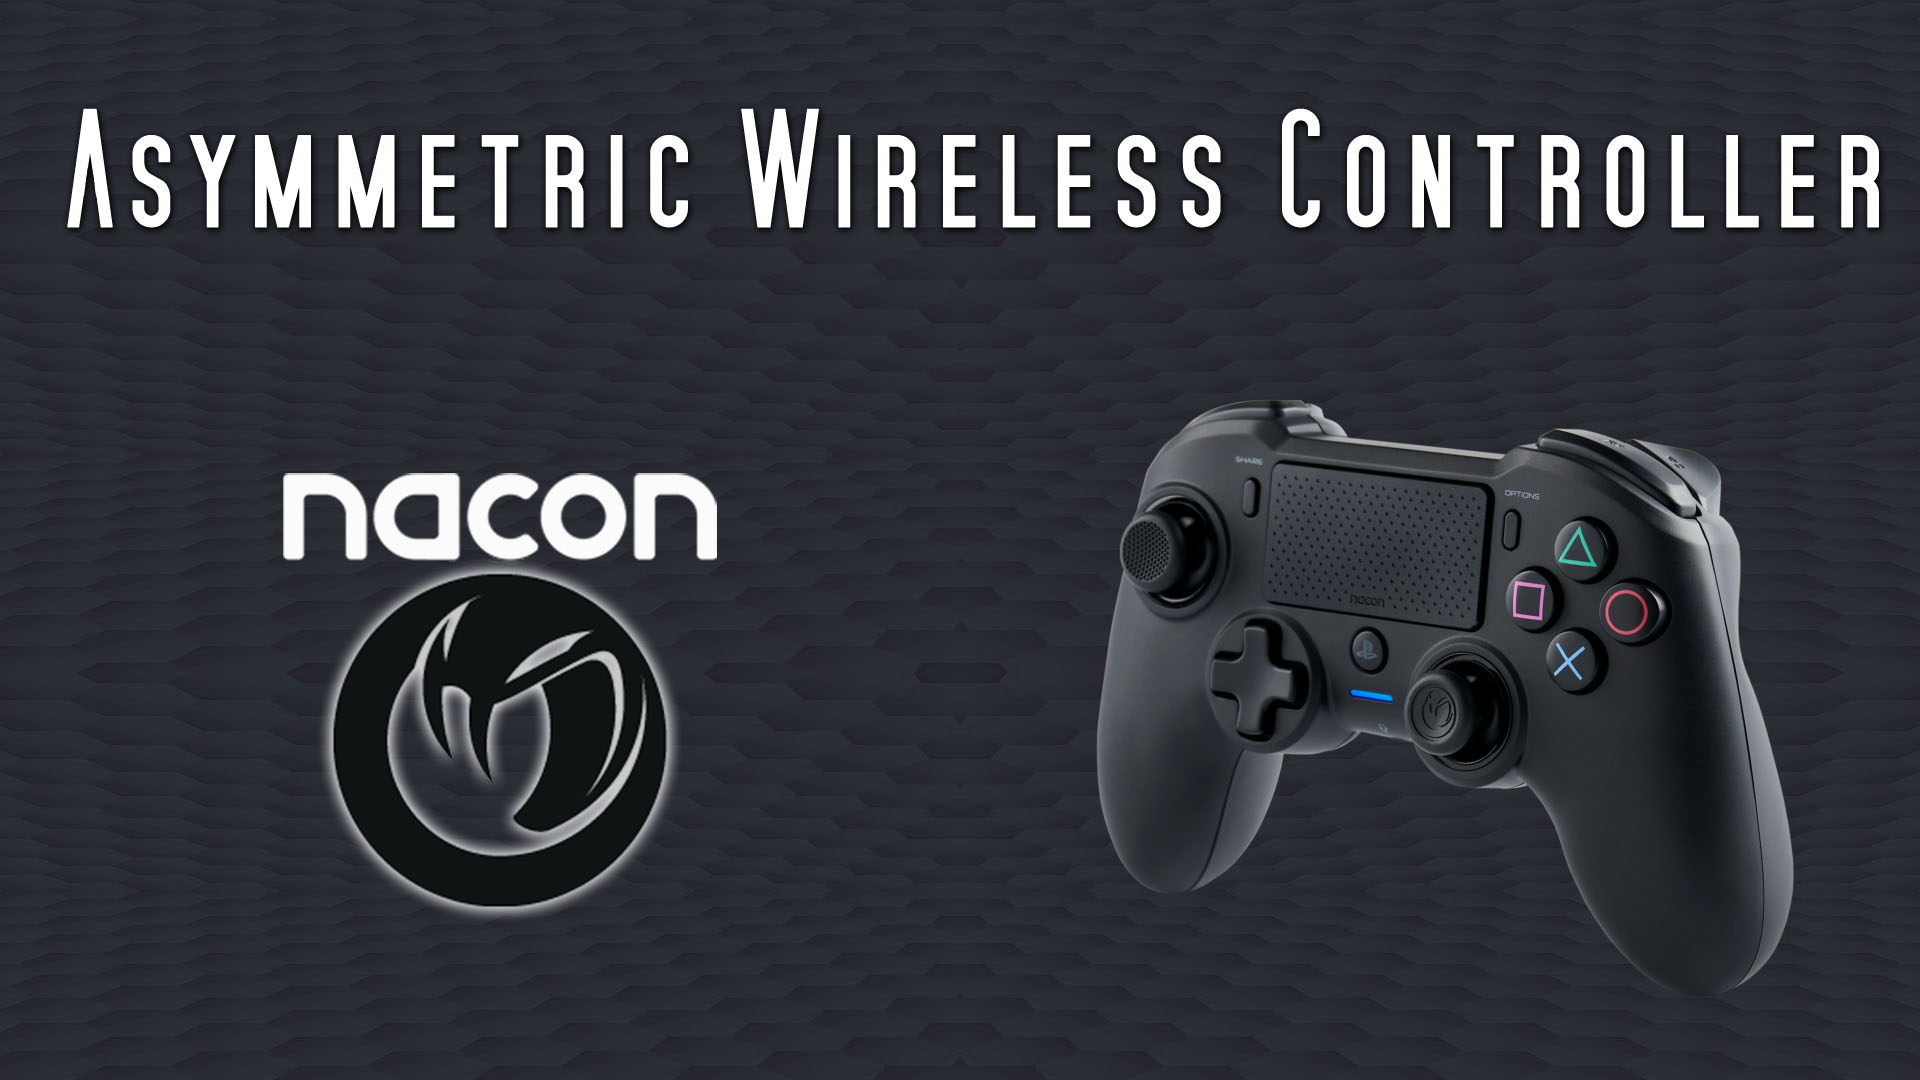 NACON Asymmetric Wireless Controller (PS4 + PC) Review